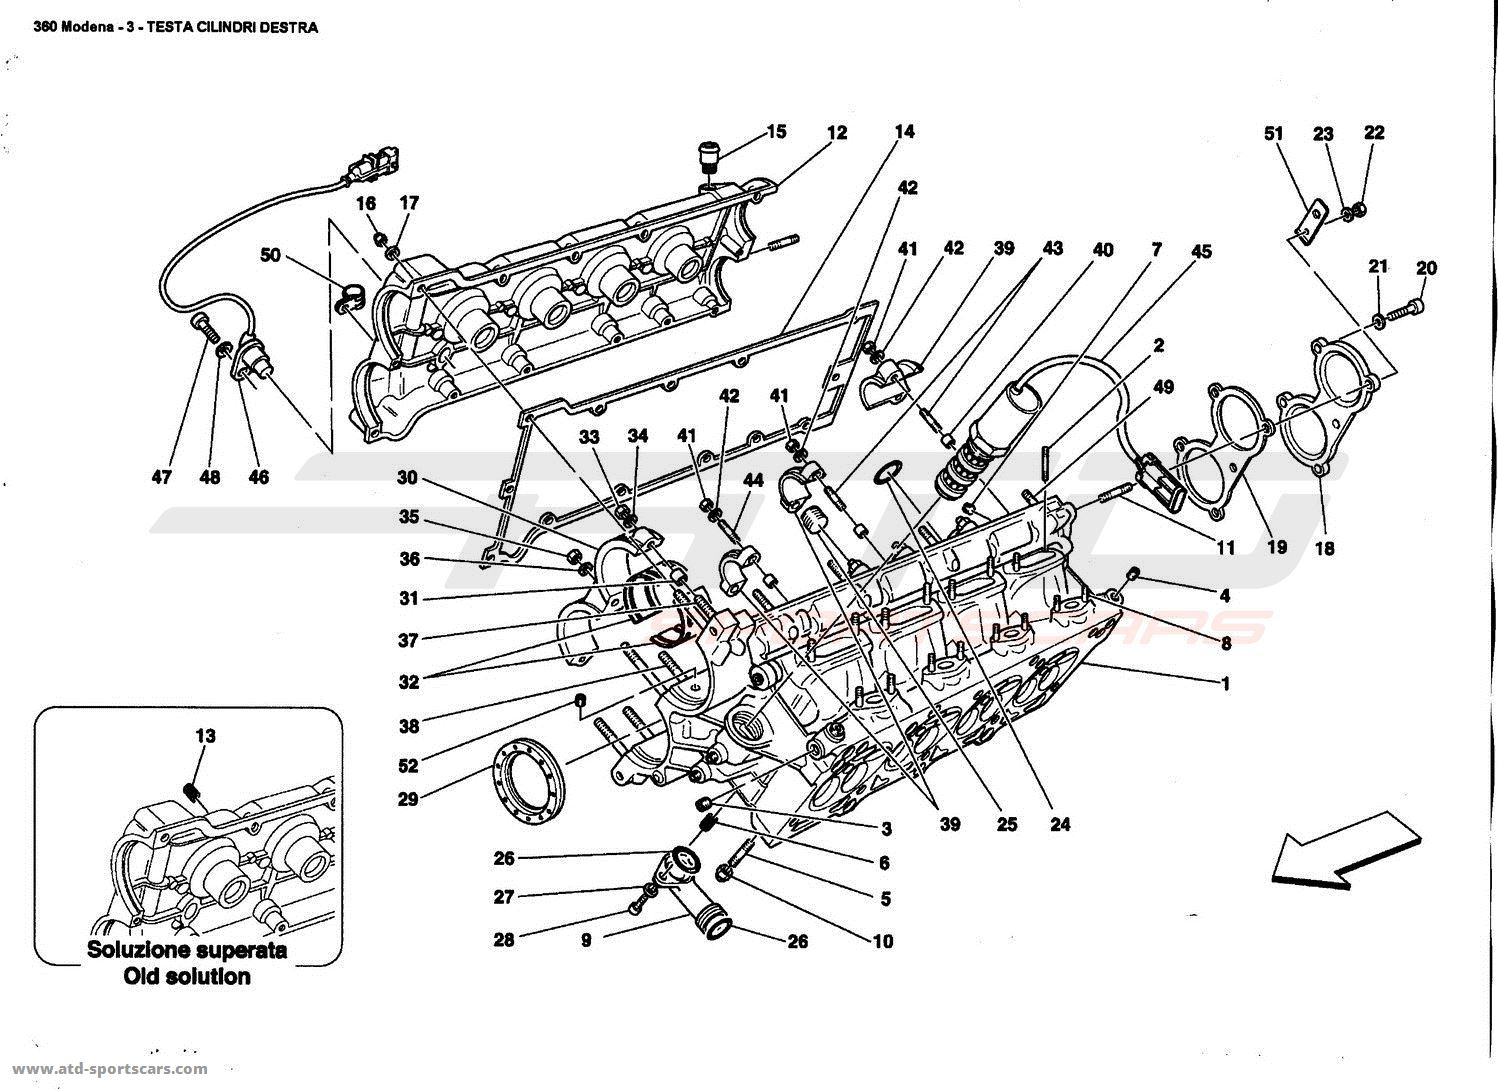 Ferrari 360 Modena Wiring Diagram. Ferrari. Wiring Diagrams Instructions